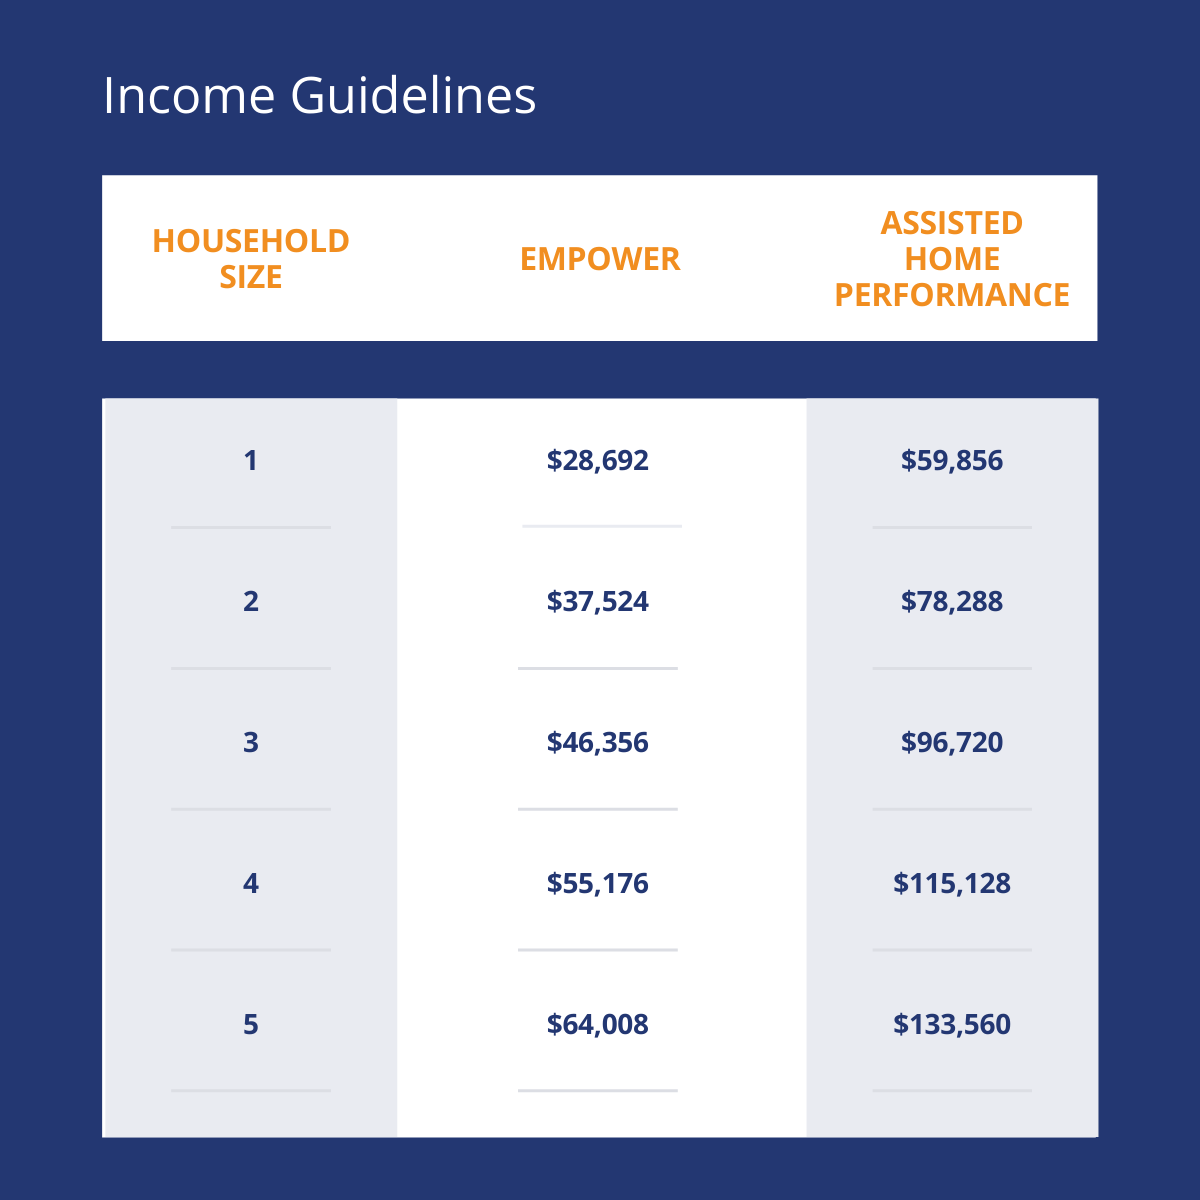 Income guidelines for Empower and Assisted Home Performance